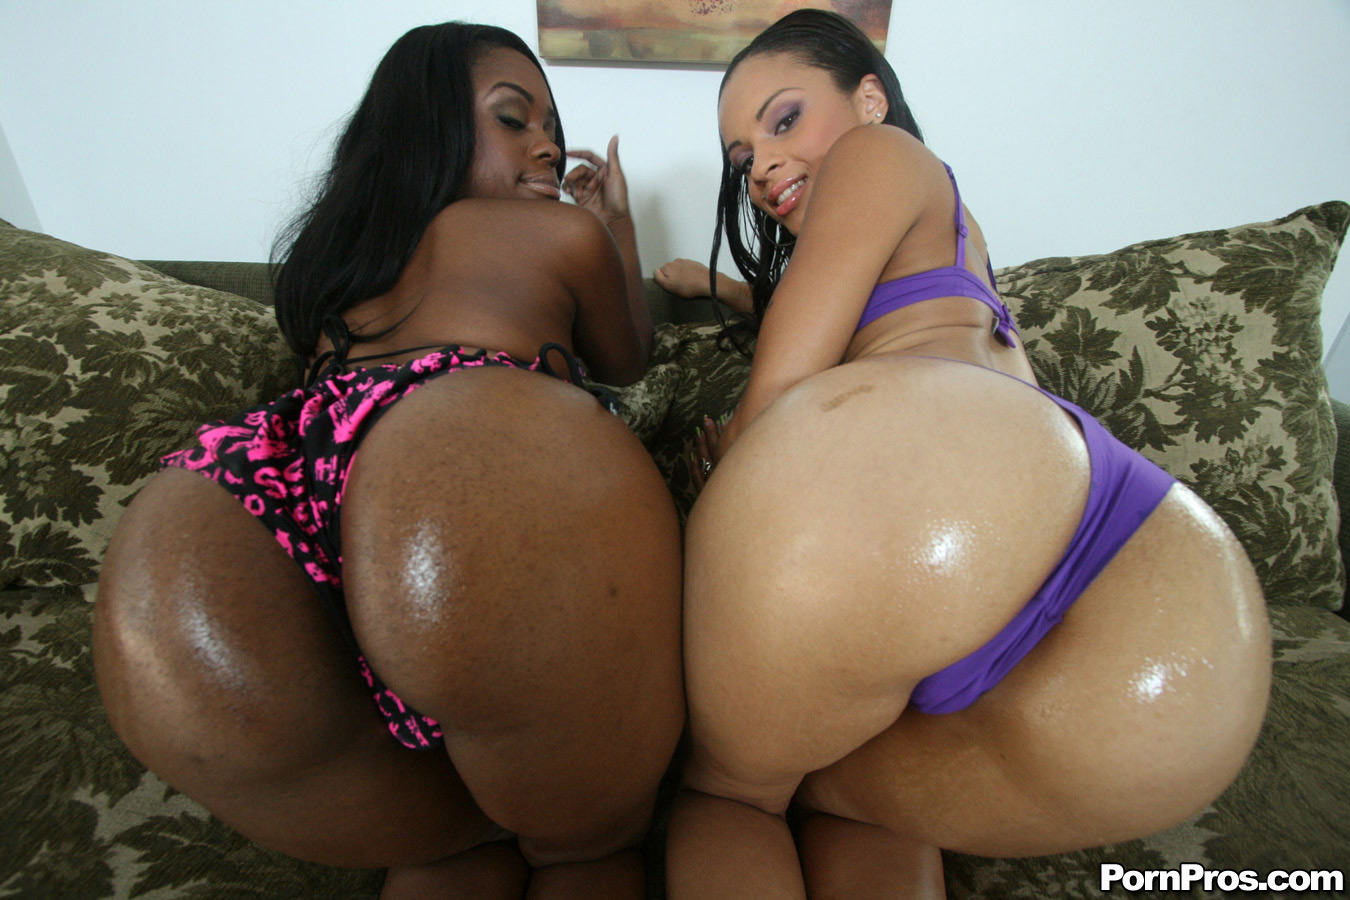 Bigass ebony milf codi bryant in threeway fun - 2 part 10